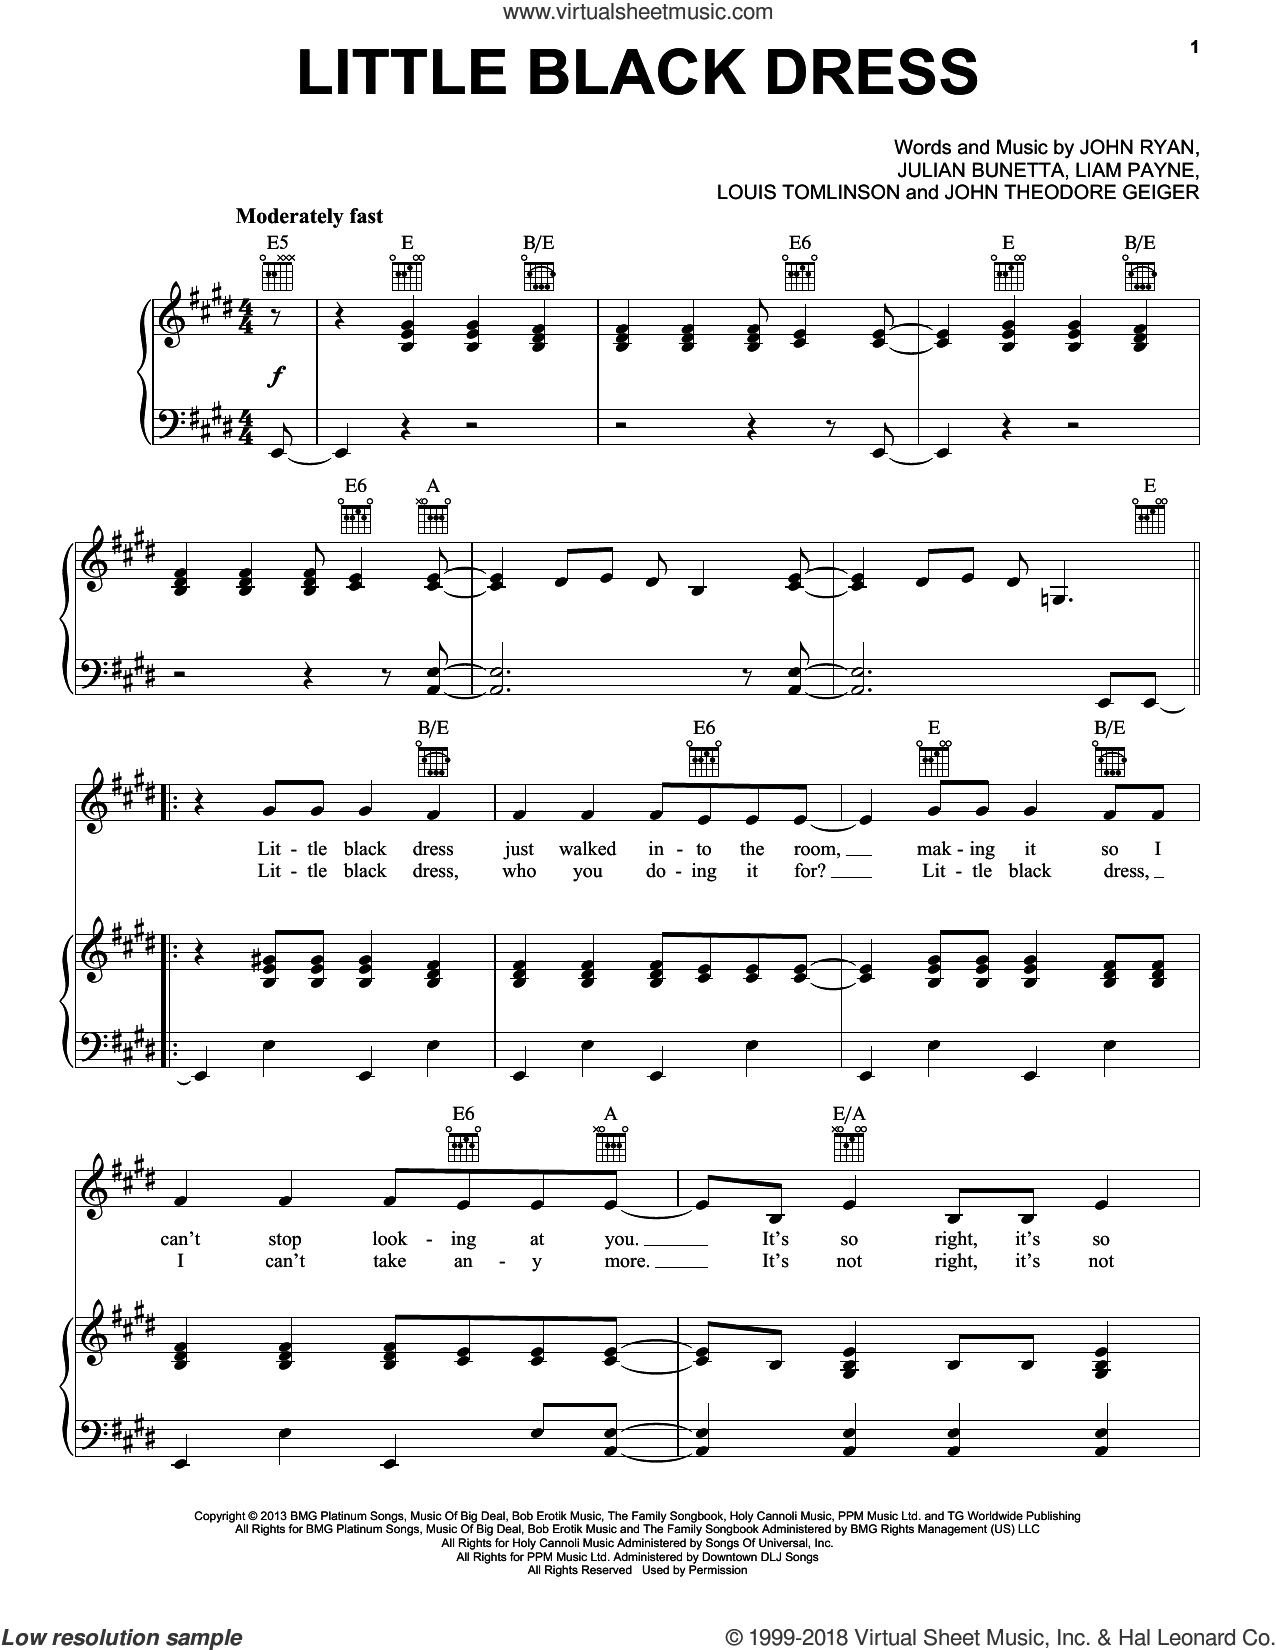 Little Black Dress sheet music for voice, piano or guitar by One Direction, John Ryan, Julian Bunetta, Liam Payne and Louis Tomlinson, intermediate voice, piano or guitar. Score Image Preview.